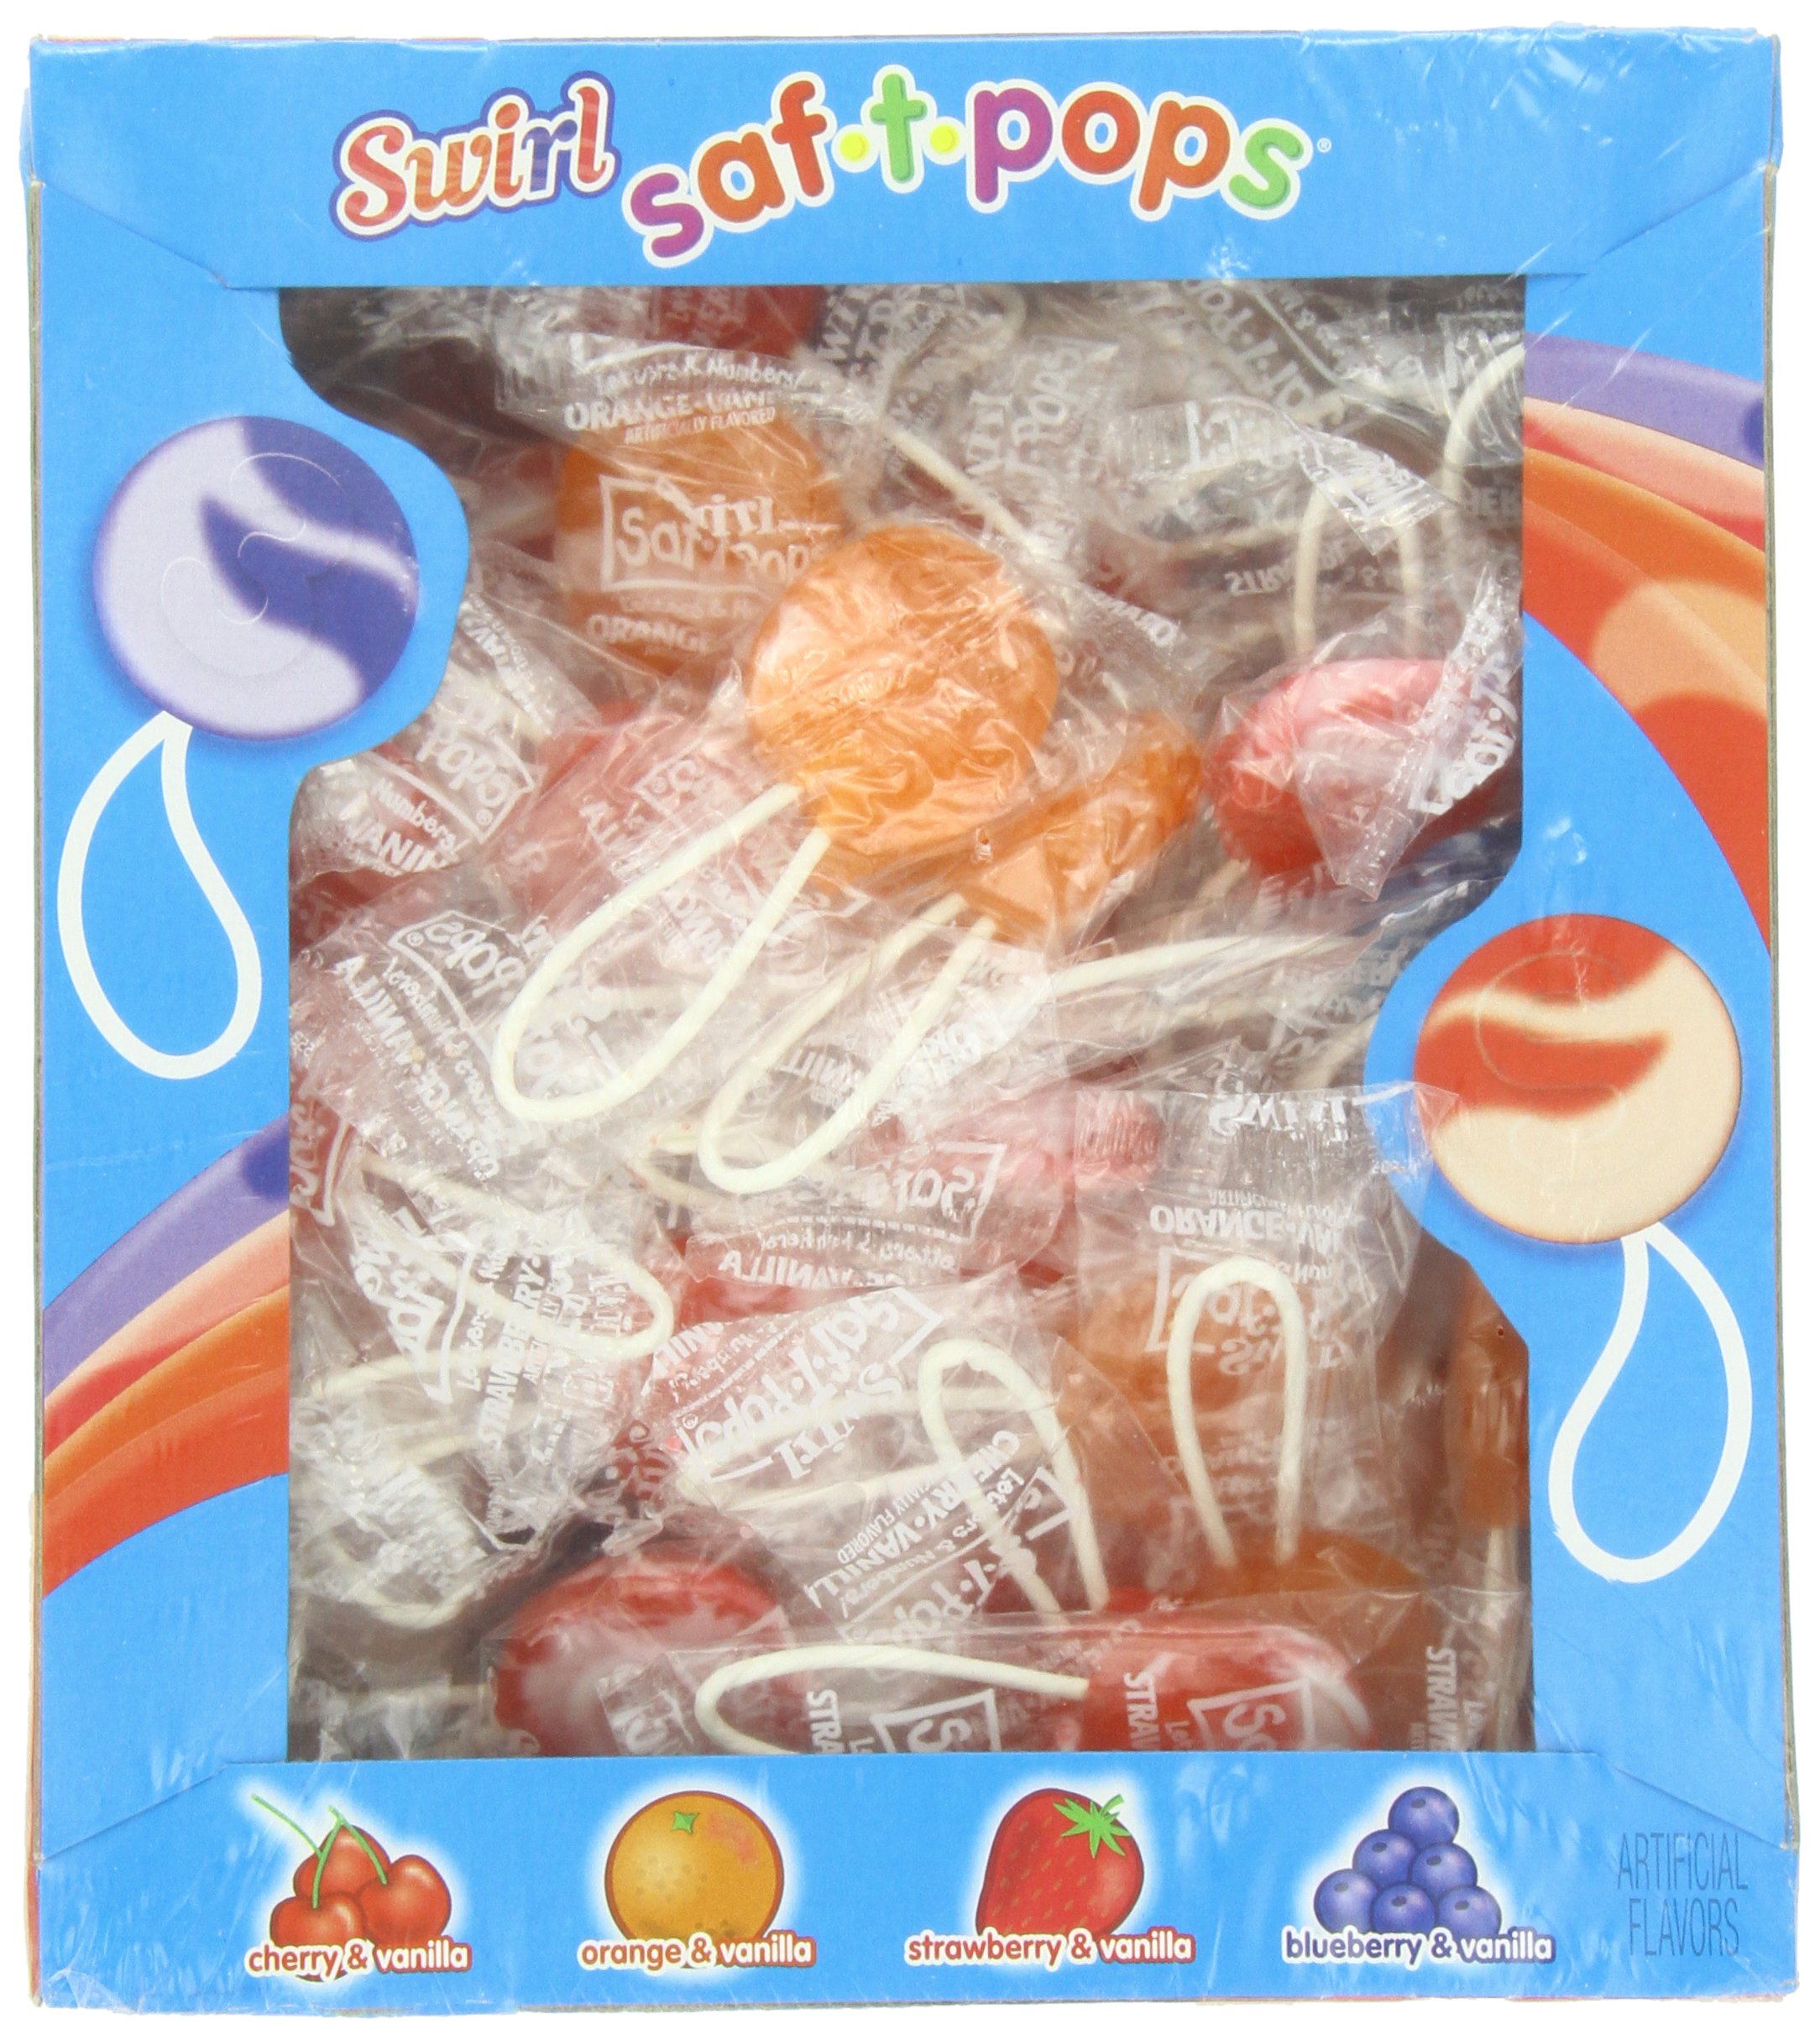 SAF-T-POPS, Swirl, 60 Count Box (Pack of 18) by Saf-T-Pops